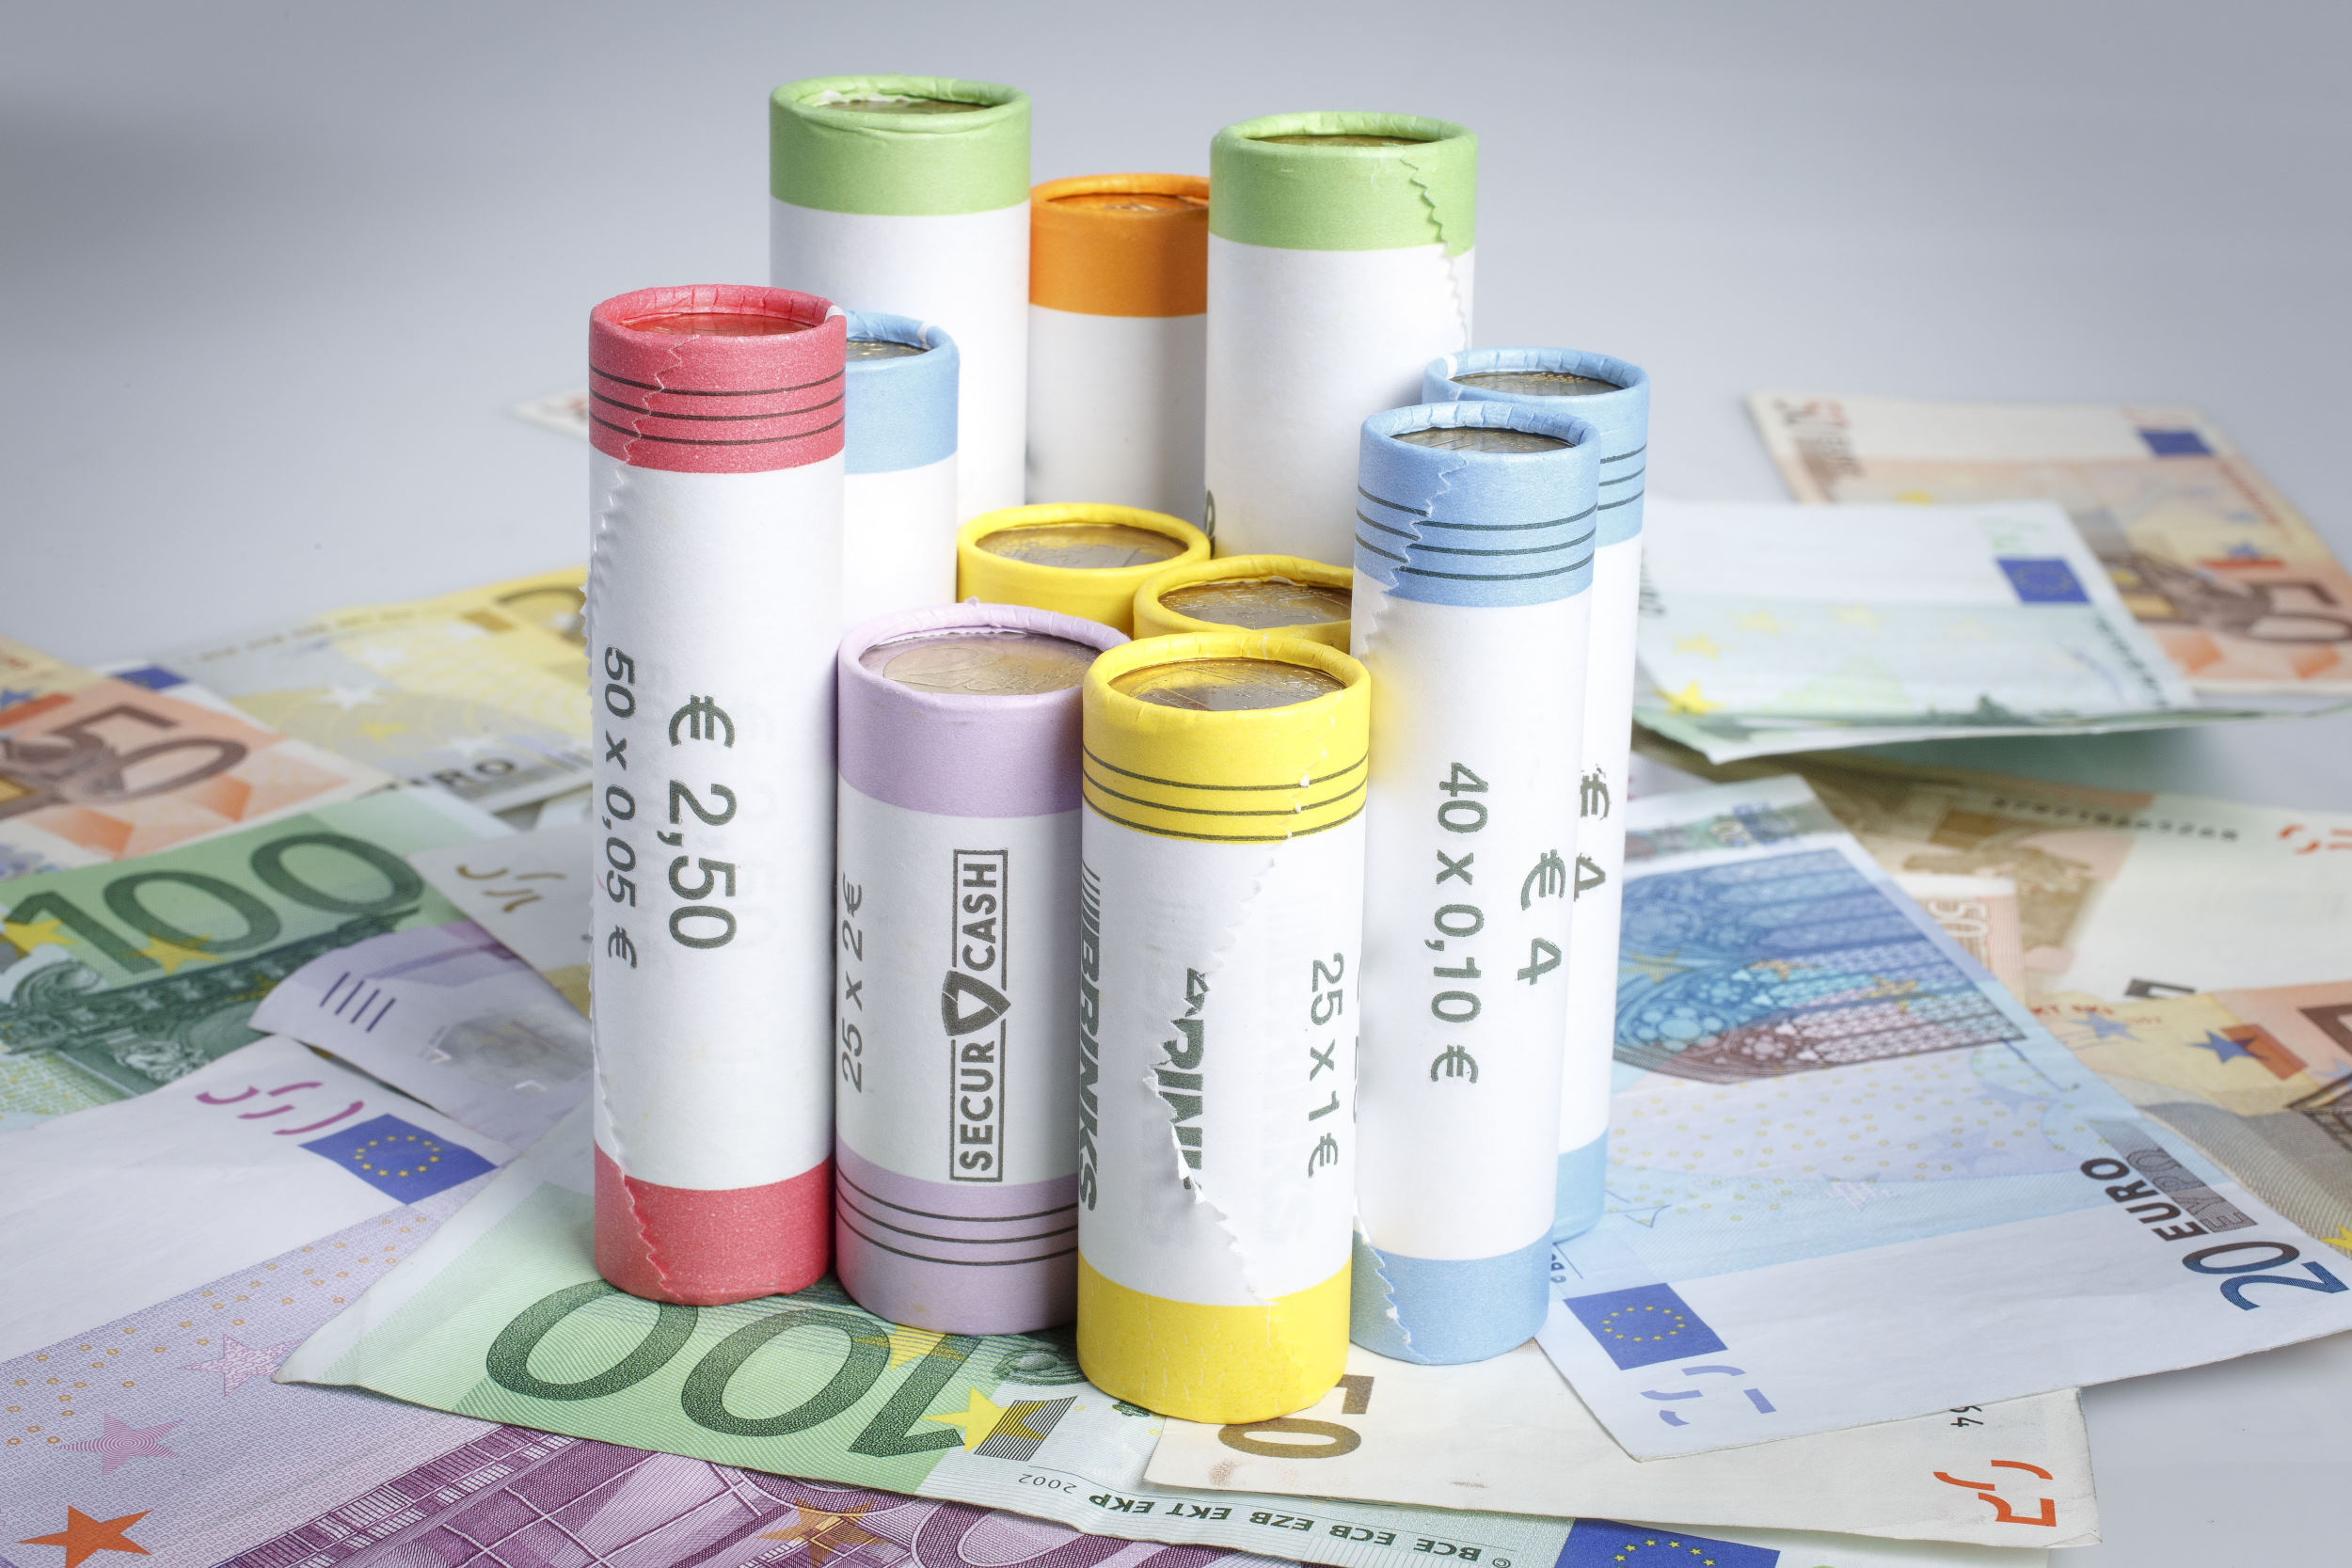 geld, money, sparen, savings, munt, coin, bankbiljet, banknote, euro, zwartgeld, witwassen, contant, cash, Brinks